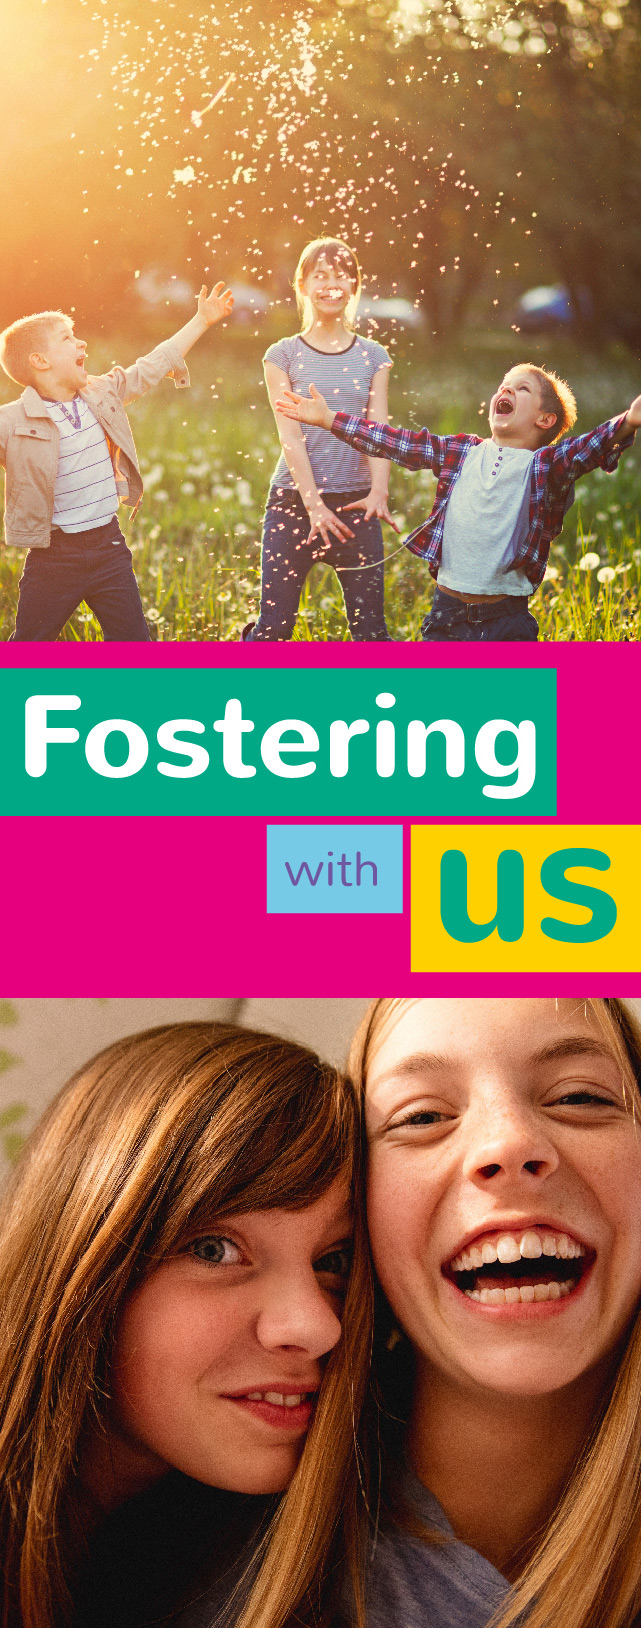 Fostering with us